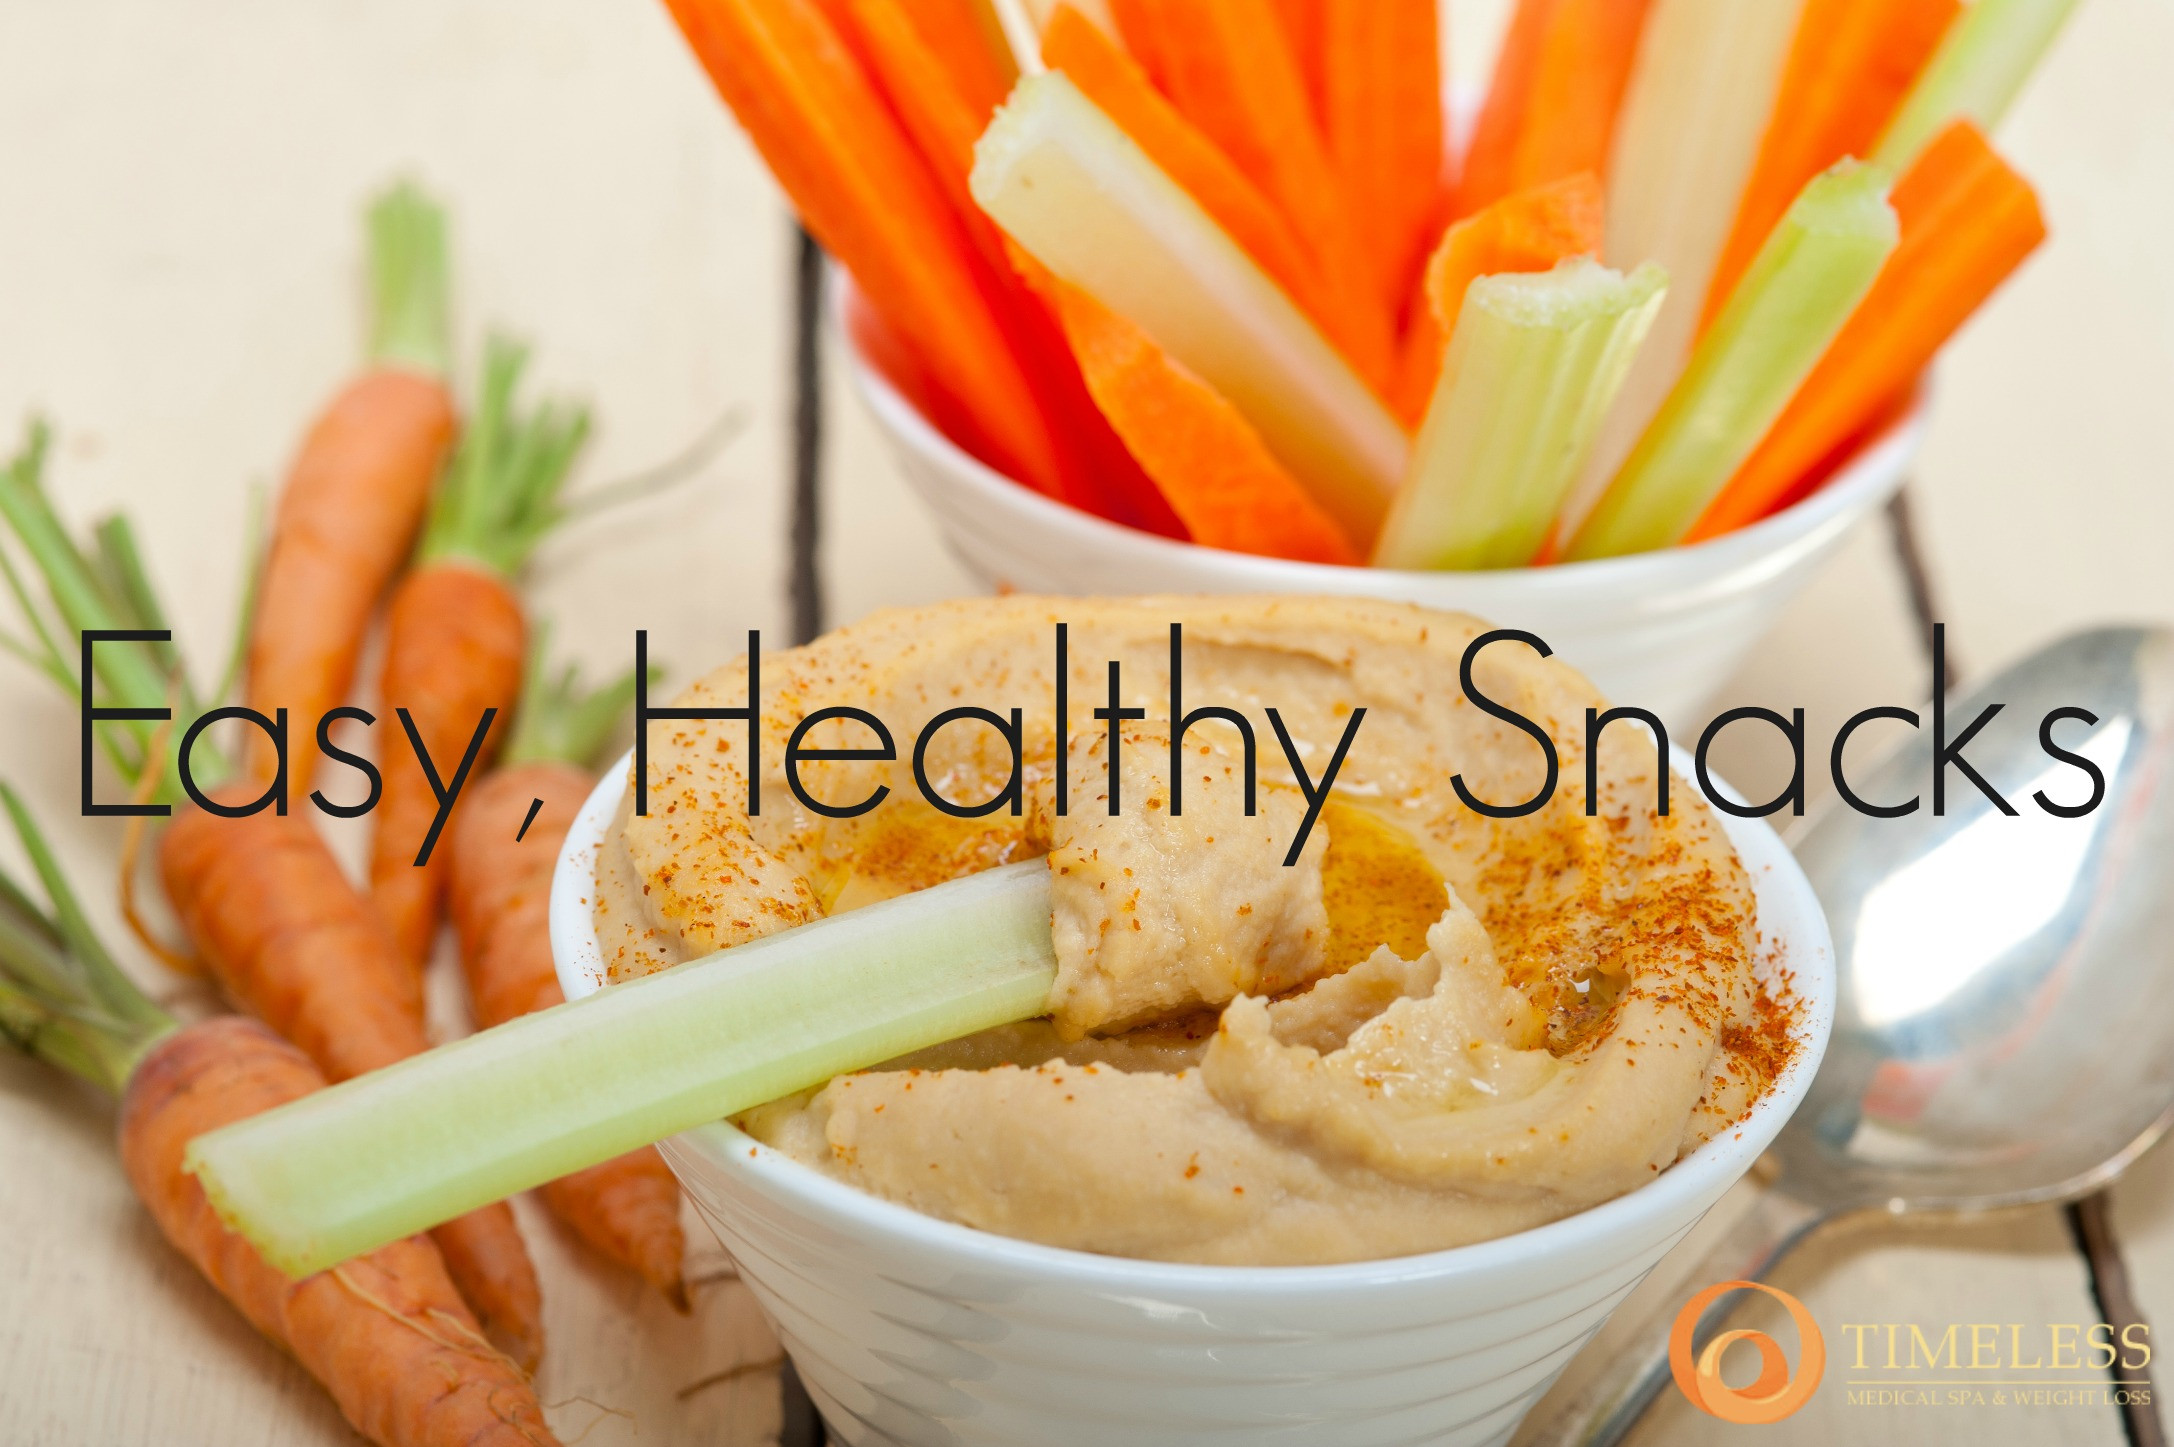 Easy And Healthy Snacks  Easy Healthy Snack Ideas TimeLess Weight Loss Blog